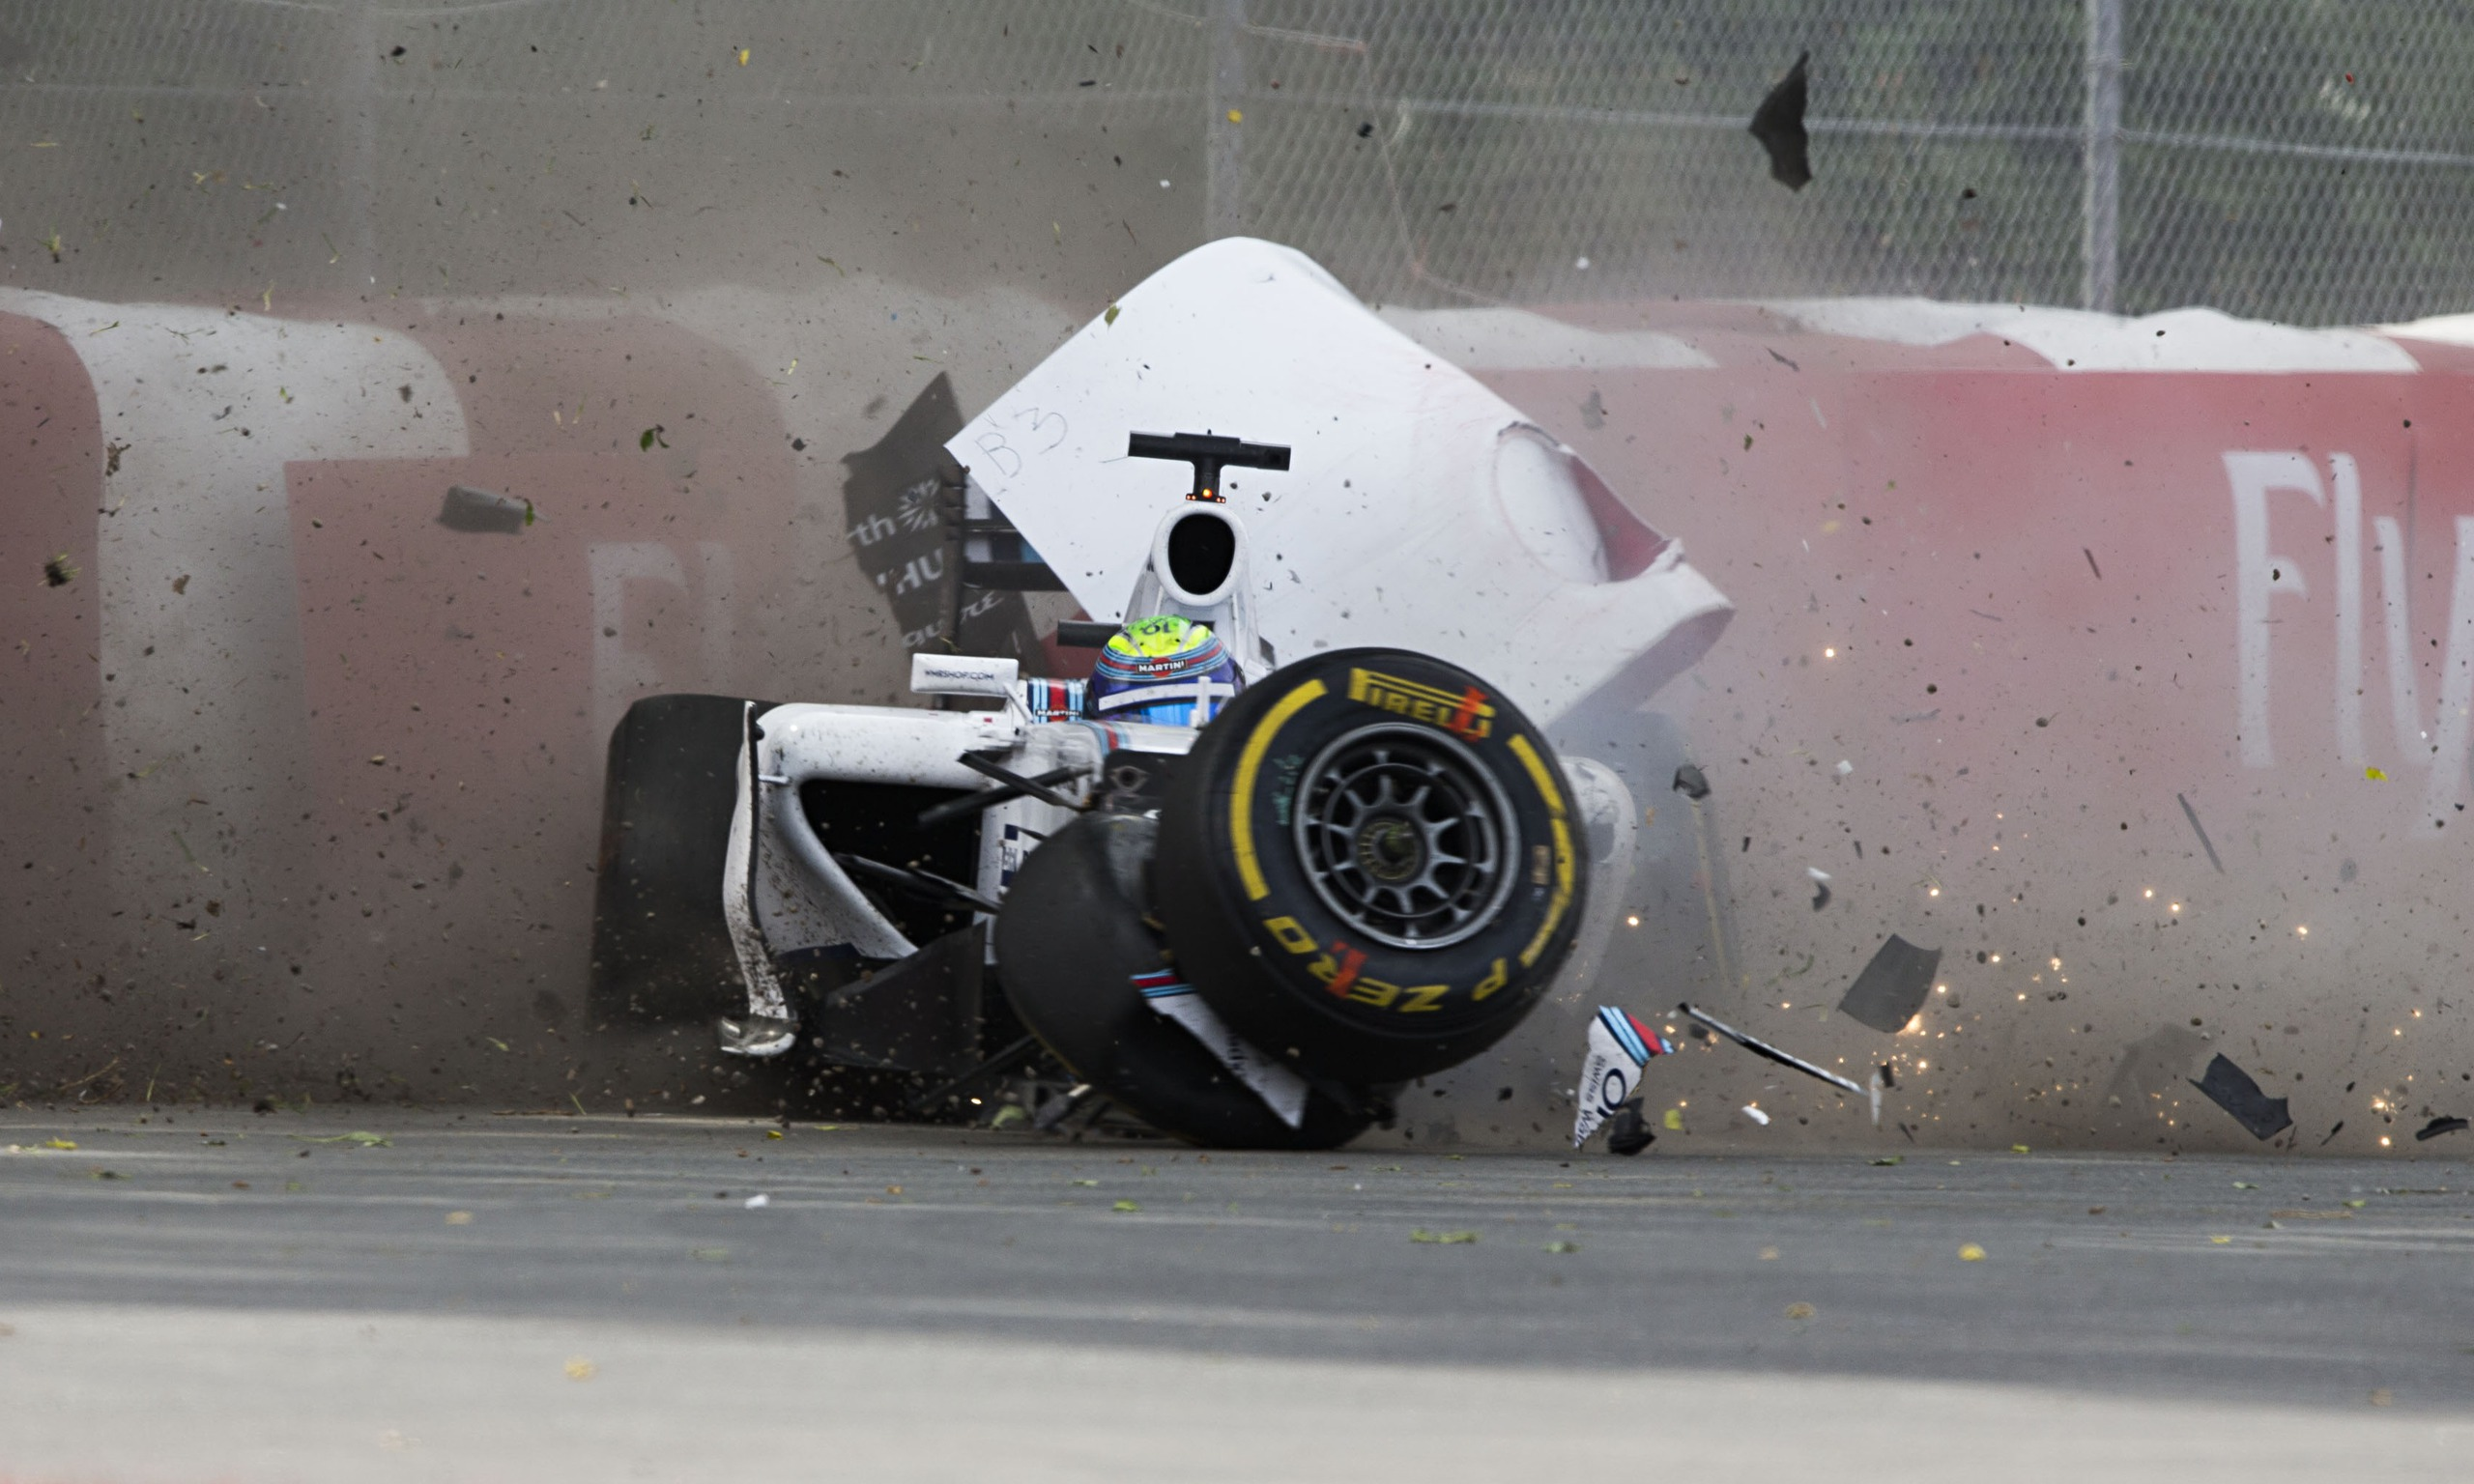 formula 1 crash in japanese grand prix